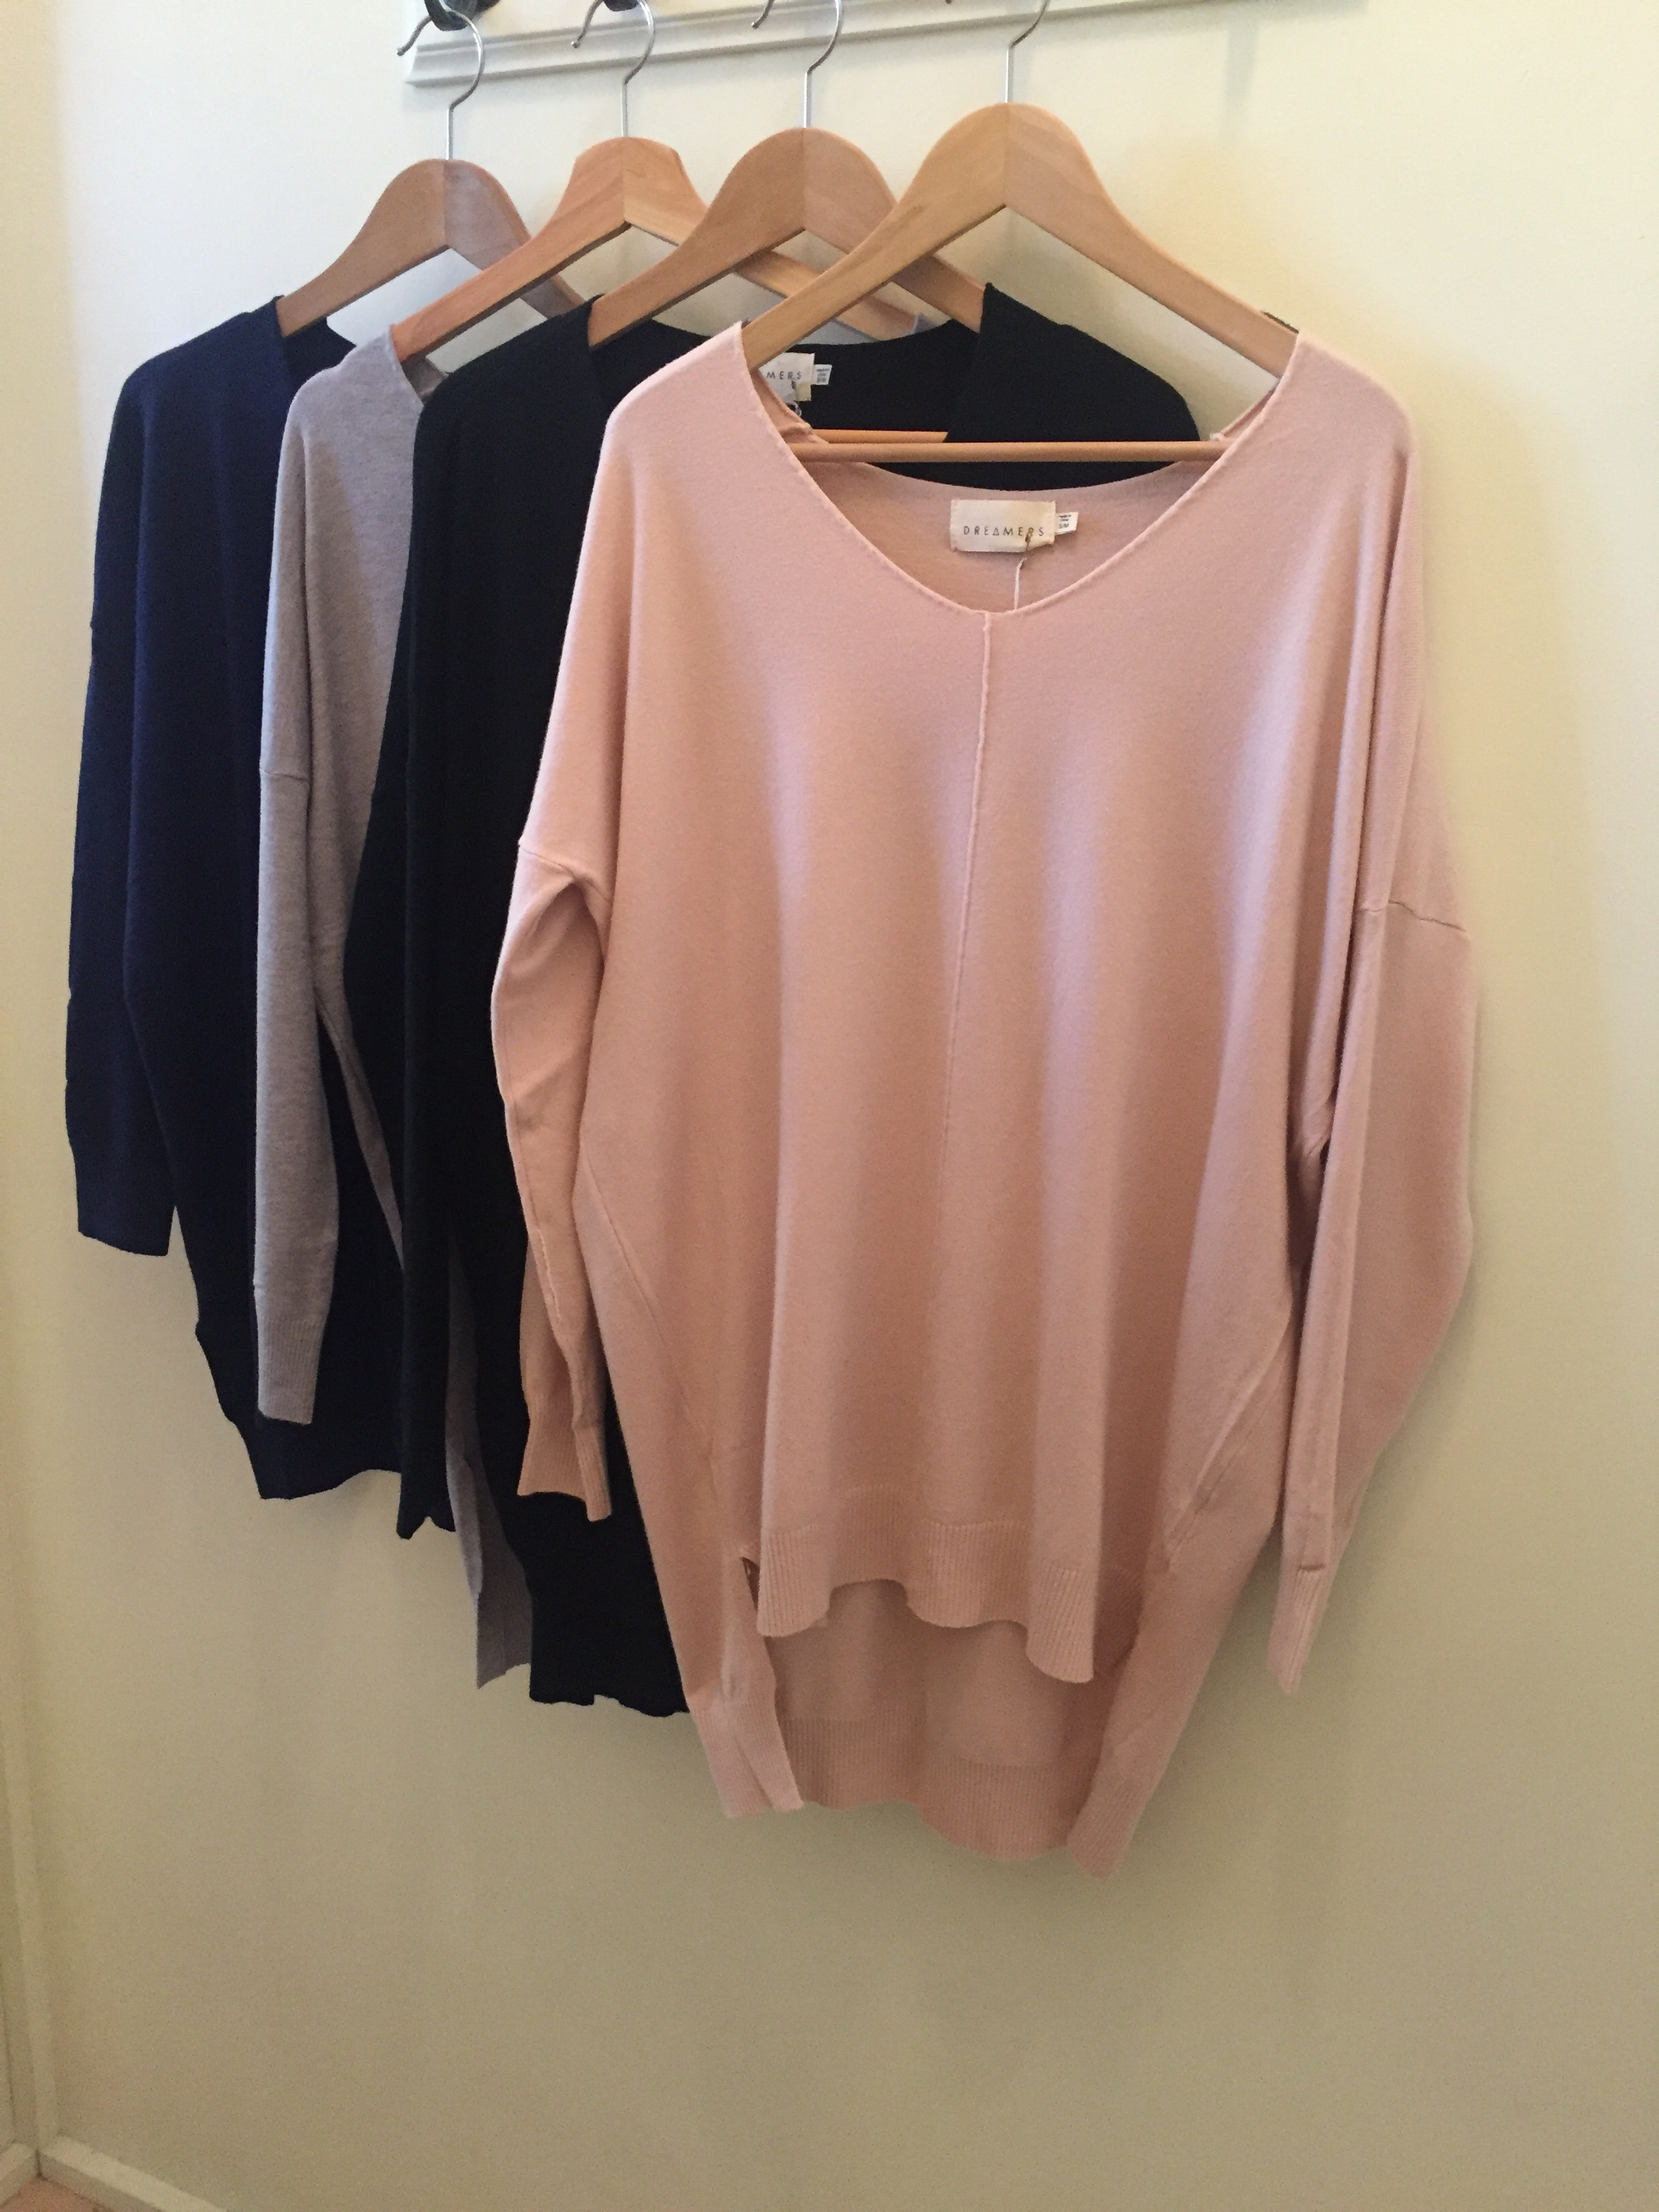 Ultra Soft Dreamers V-Neck Sweater, $42